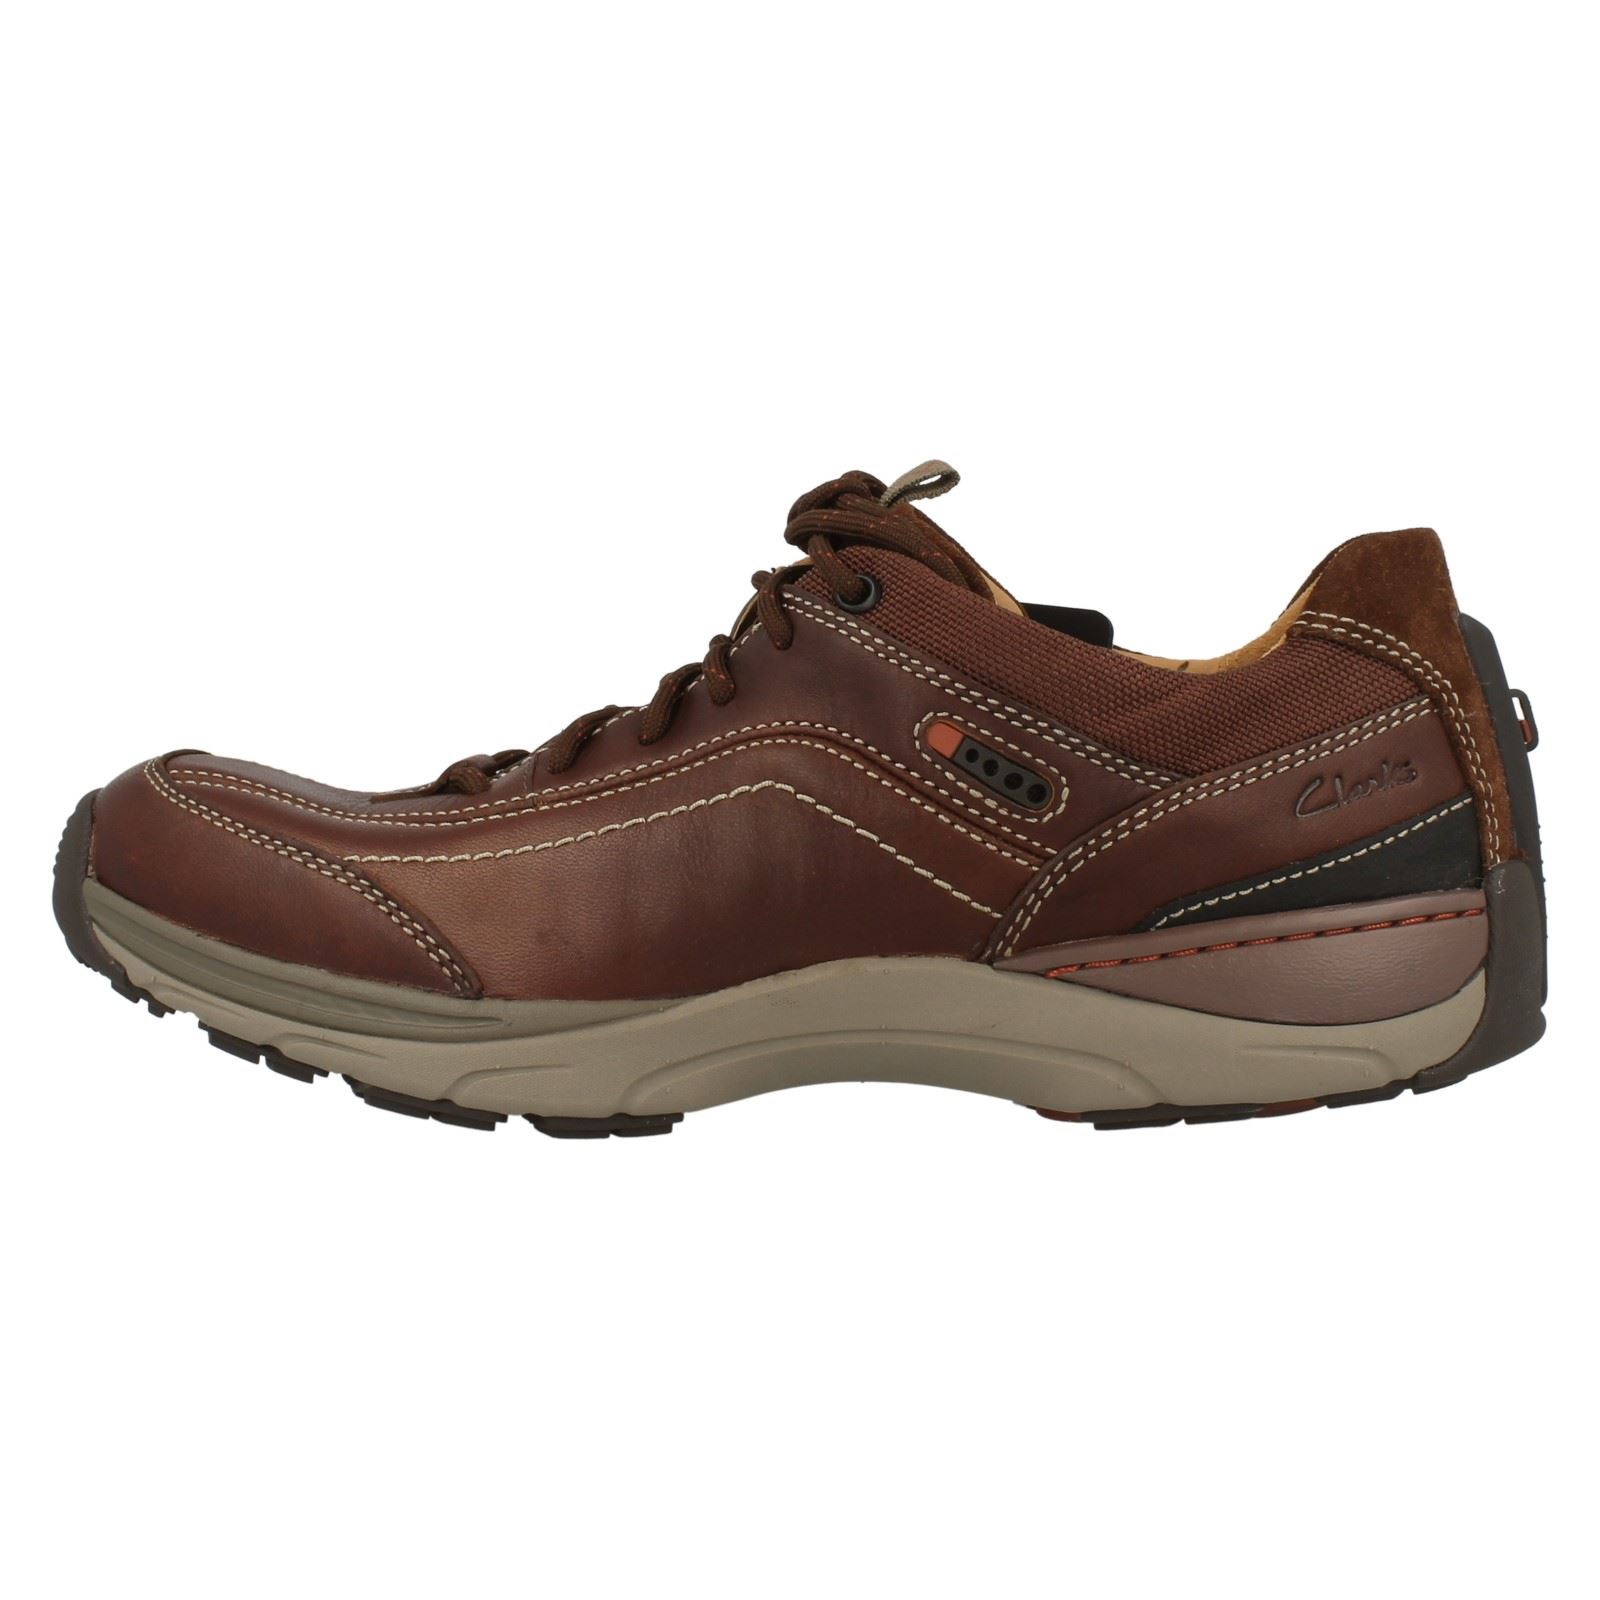 Mens Clarks Casual Active Air Vent Shoes Skyward Vibe Ebay